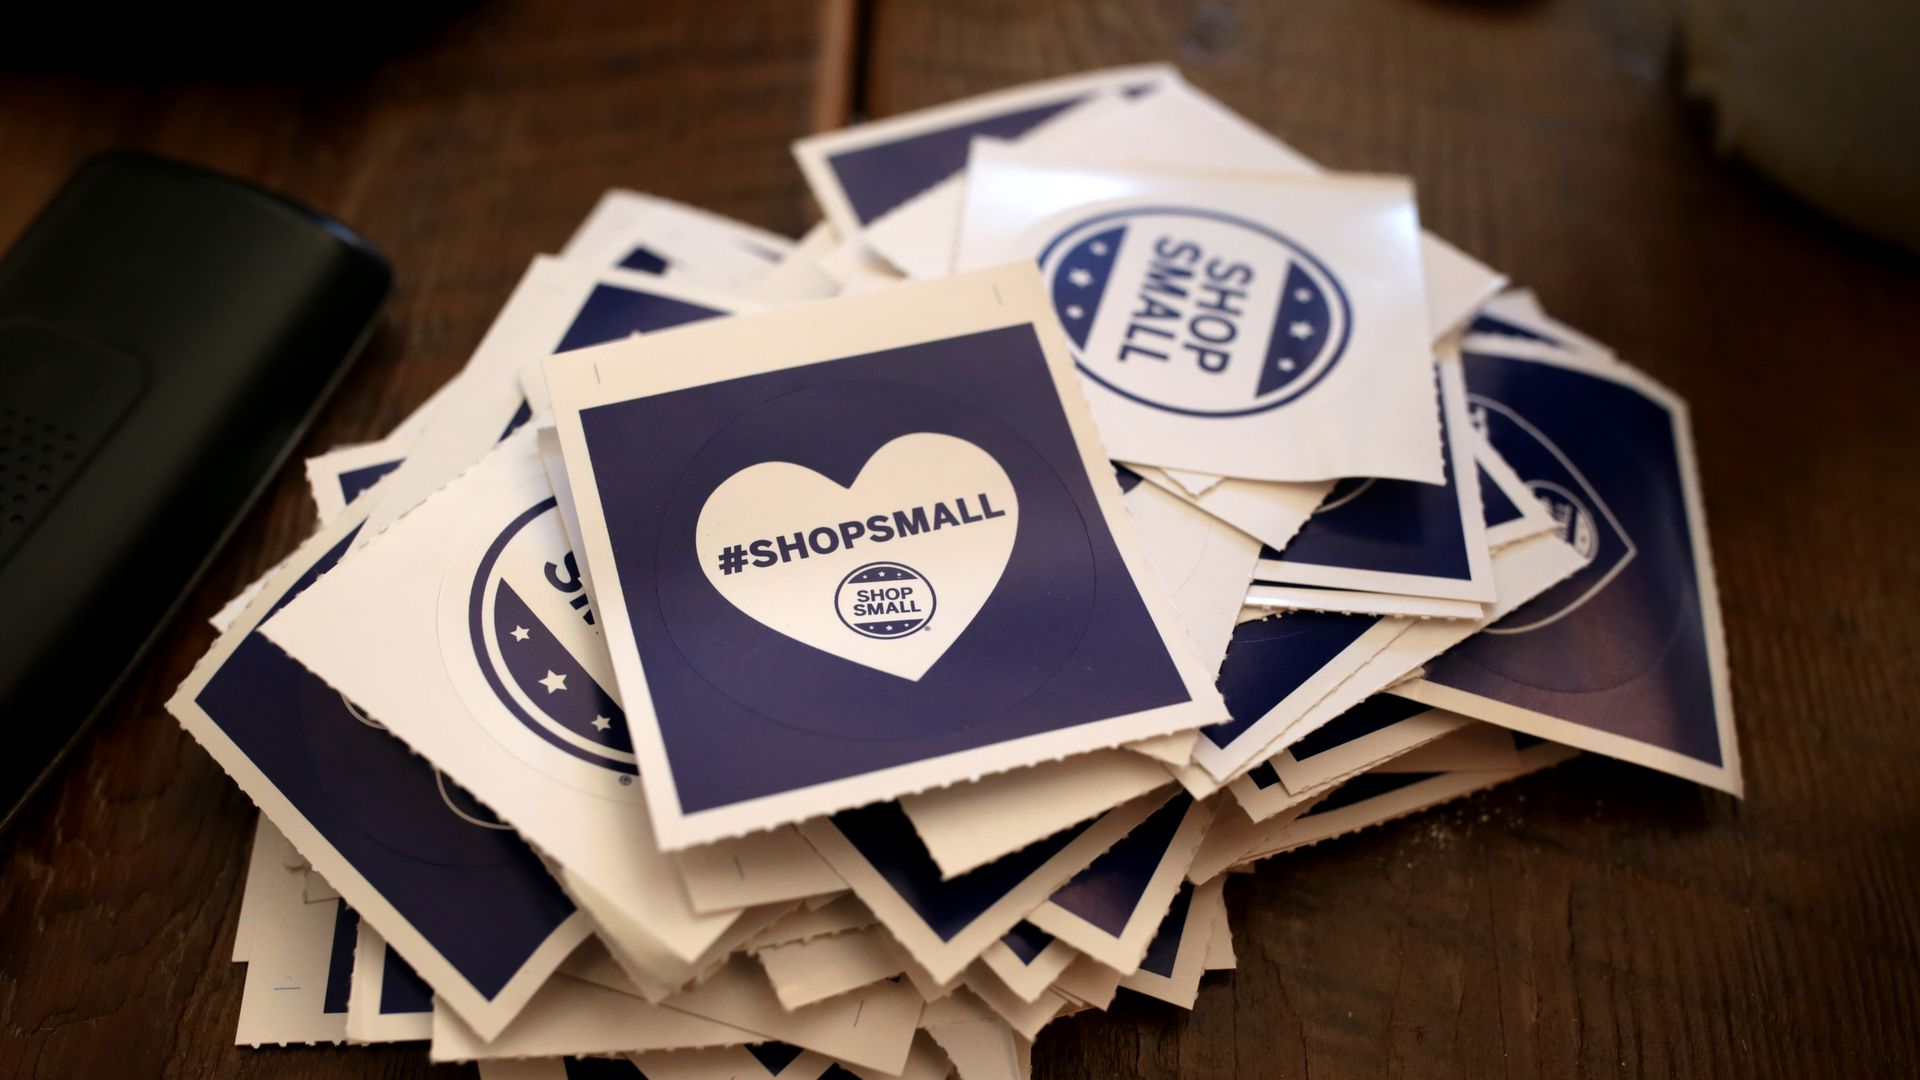 #ShopSmall stickers